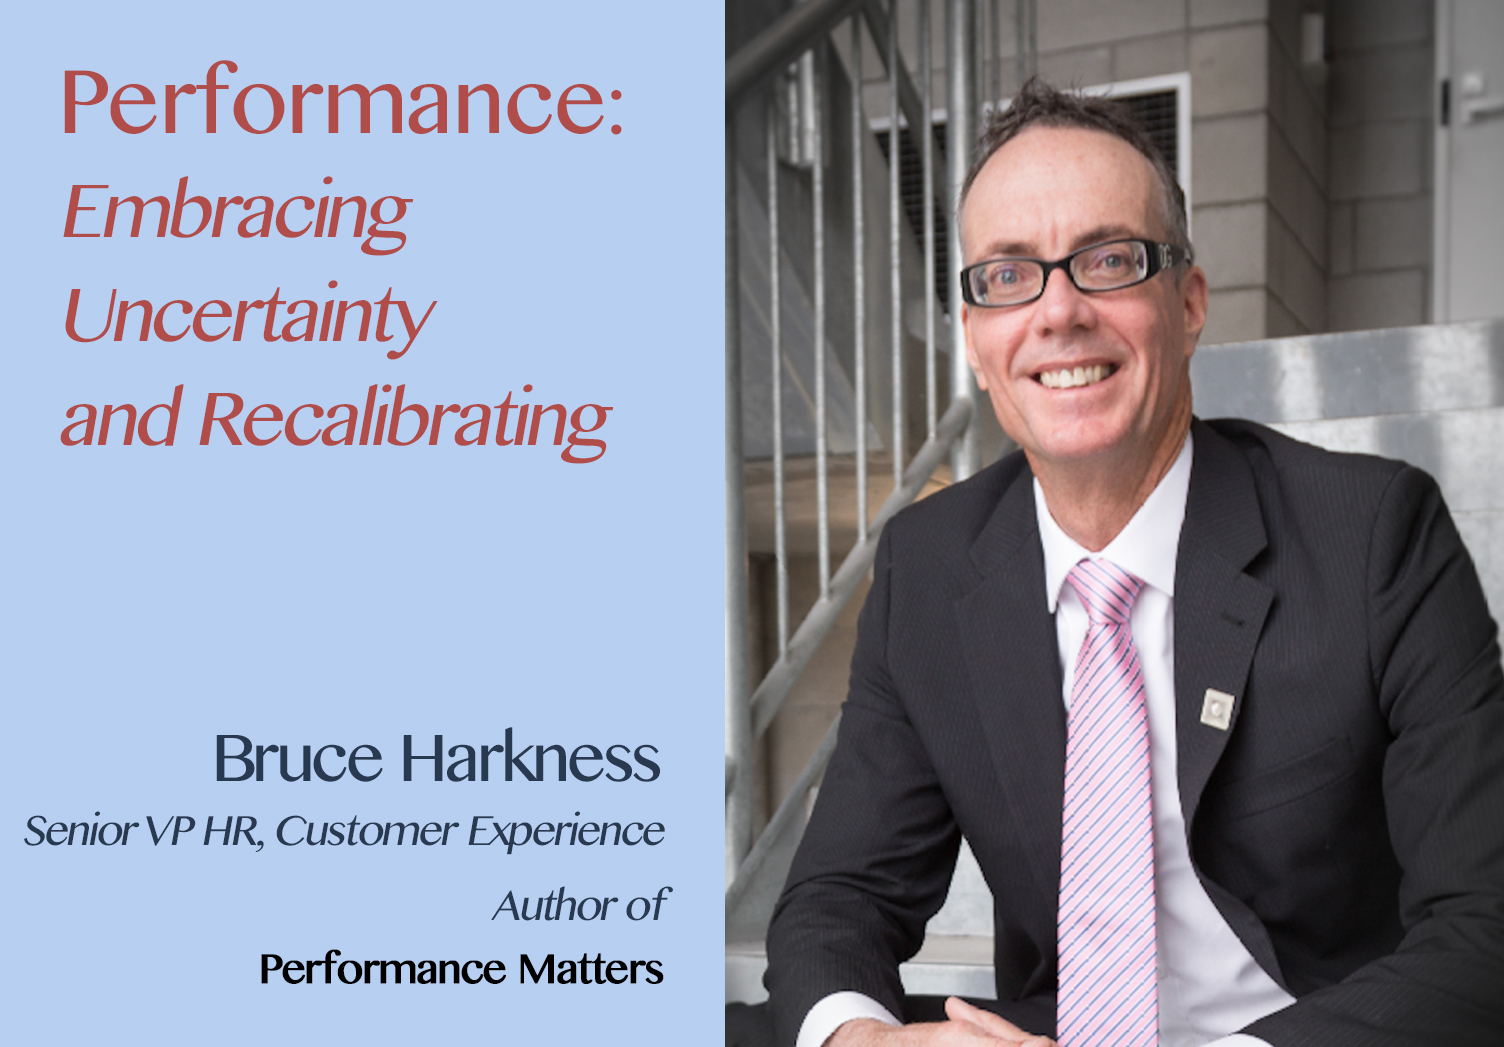 The Hospitality Resilience Series on Performance with Bruce Harkness